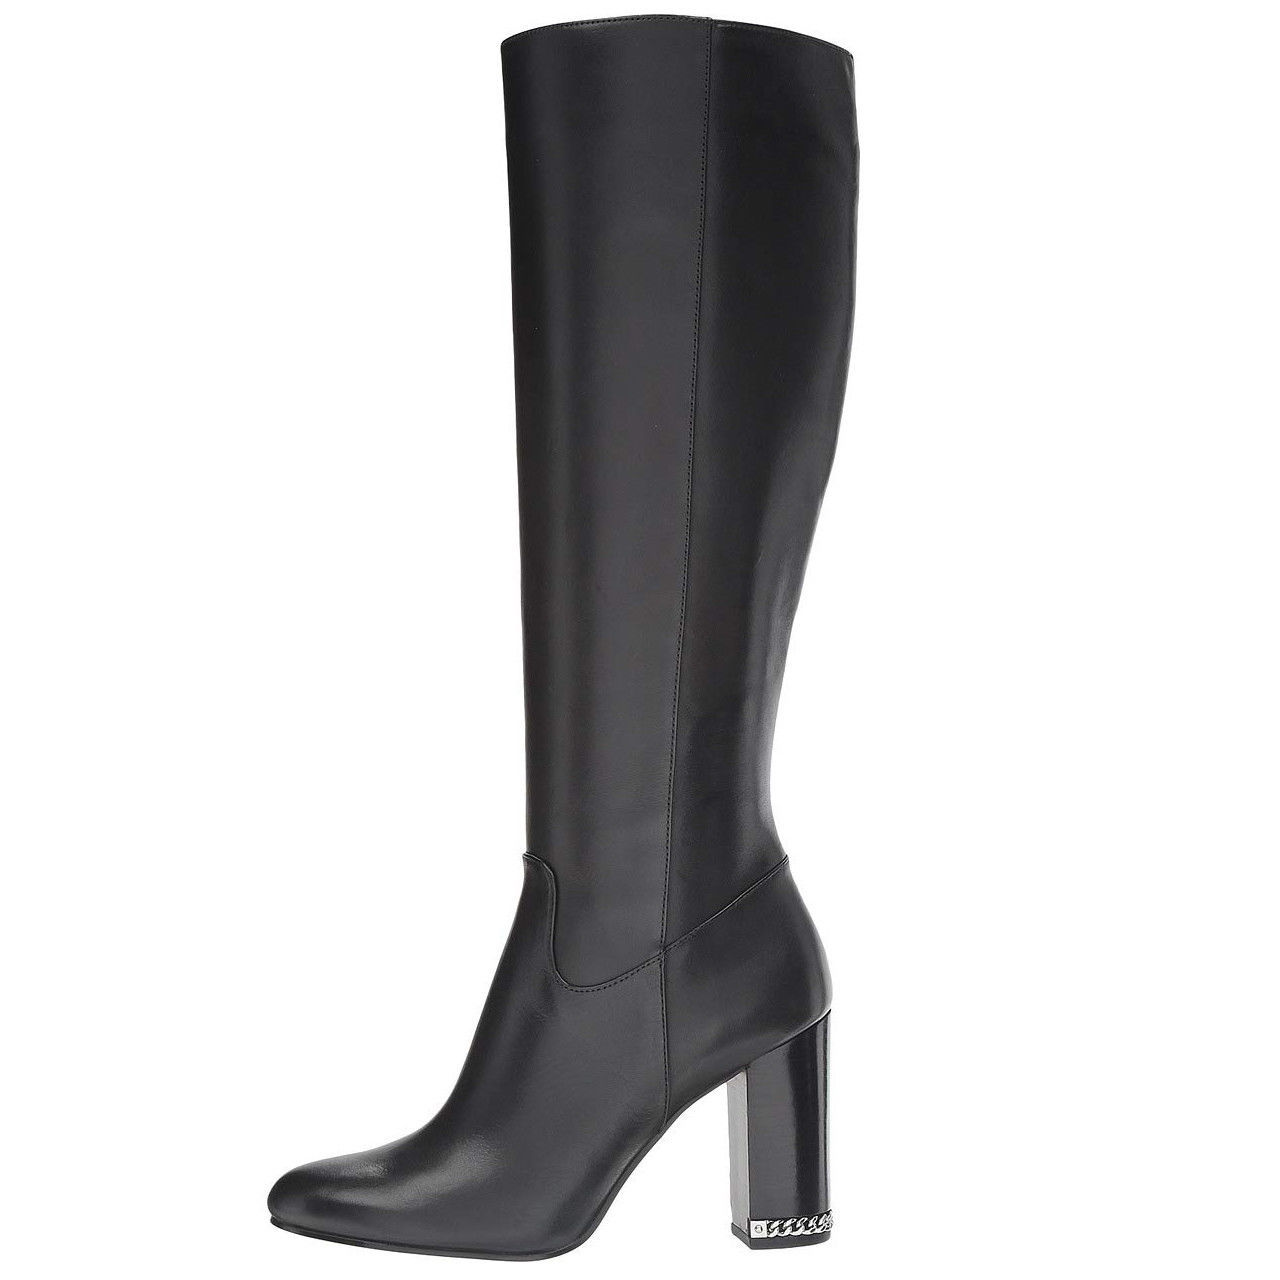 Michael Kors MK Women's Knee High Tall Stacked Heel Leather Walker Boots Black